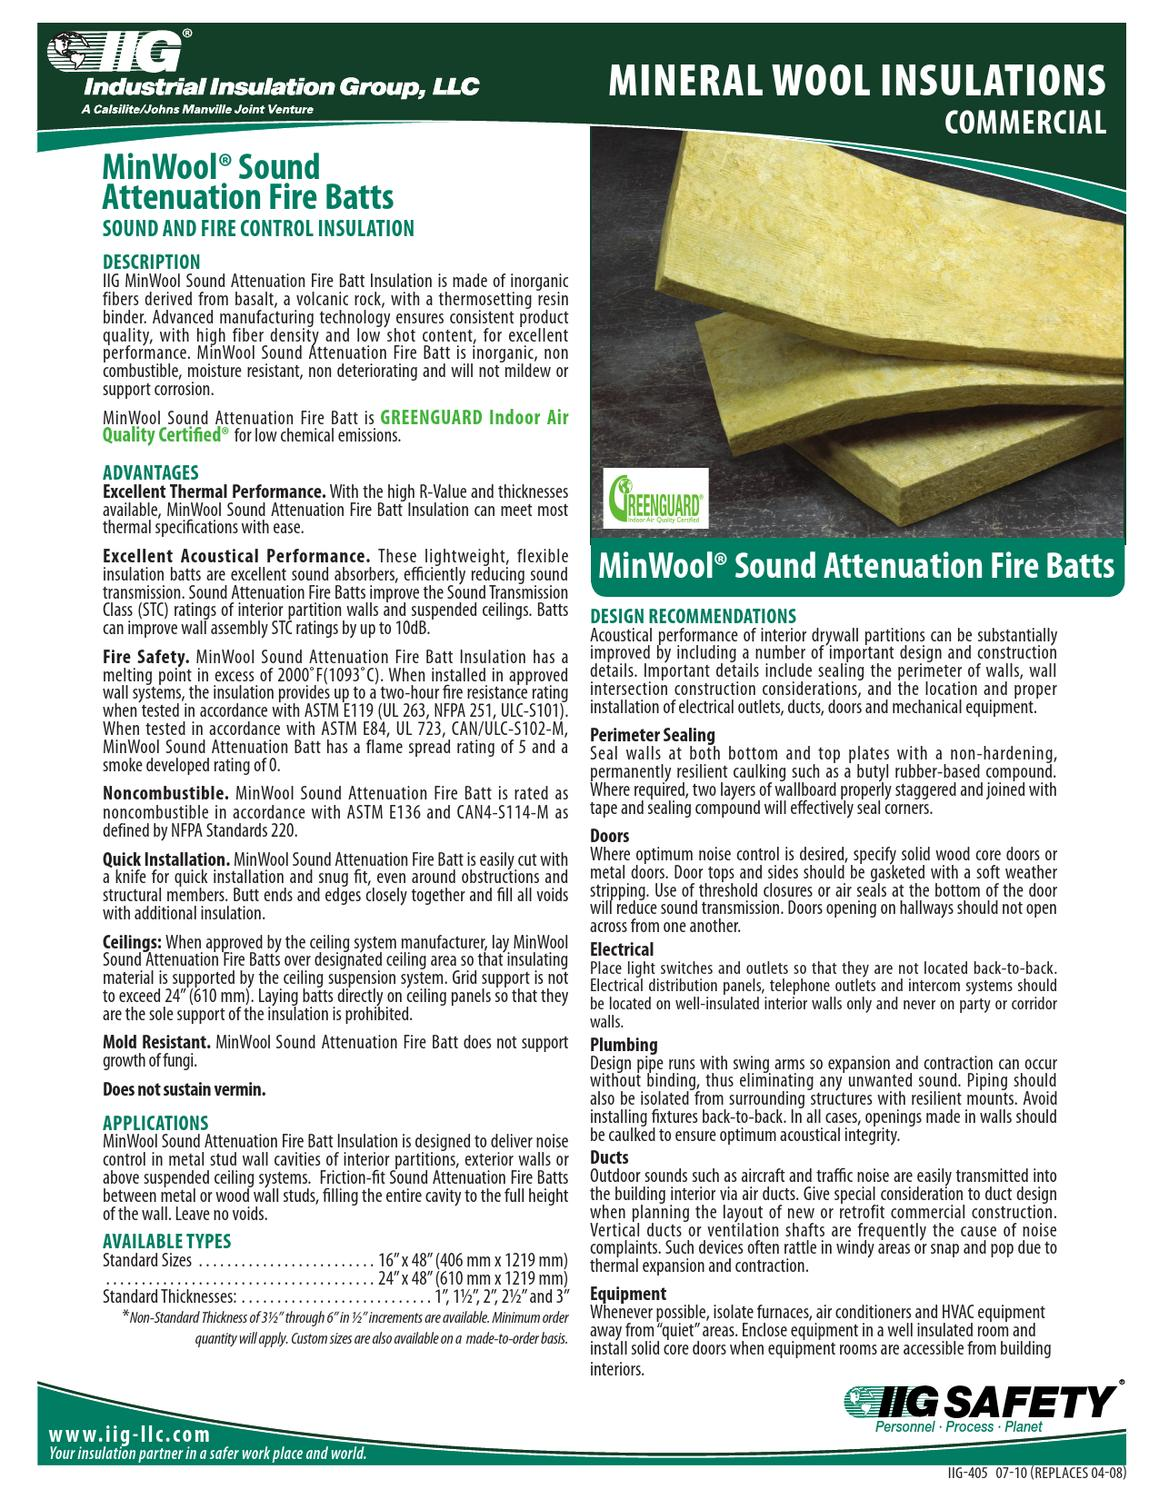 Mineral wool iig safb data sheet by macopa issuu for Mineral wool insulation health and safety